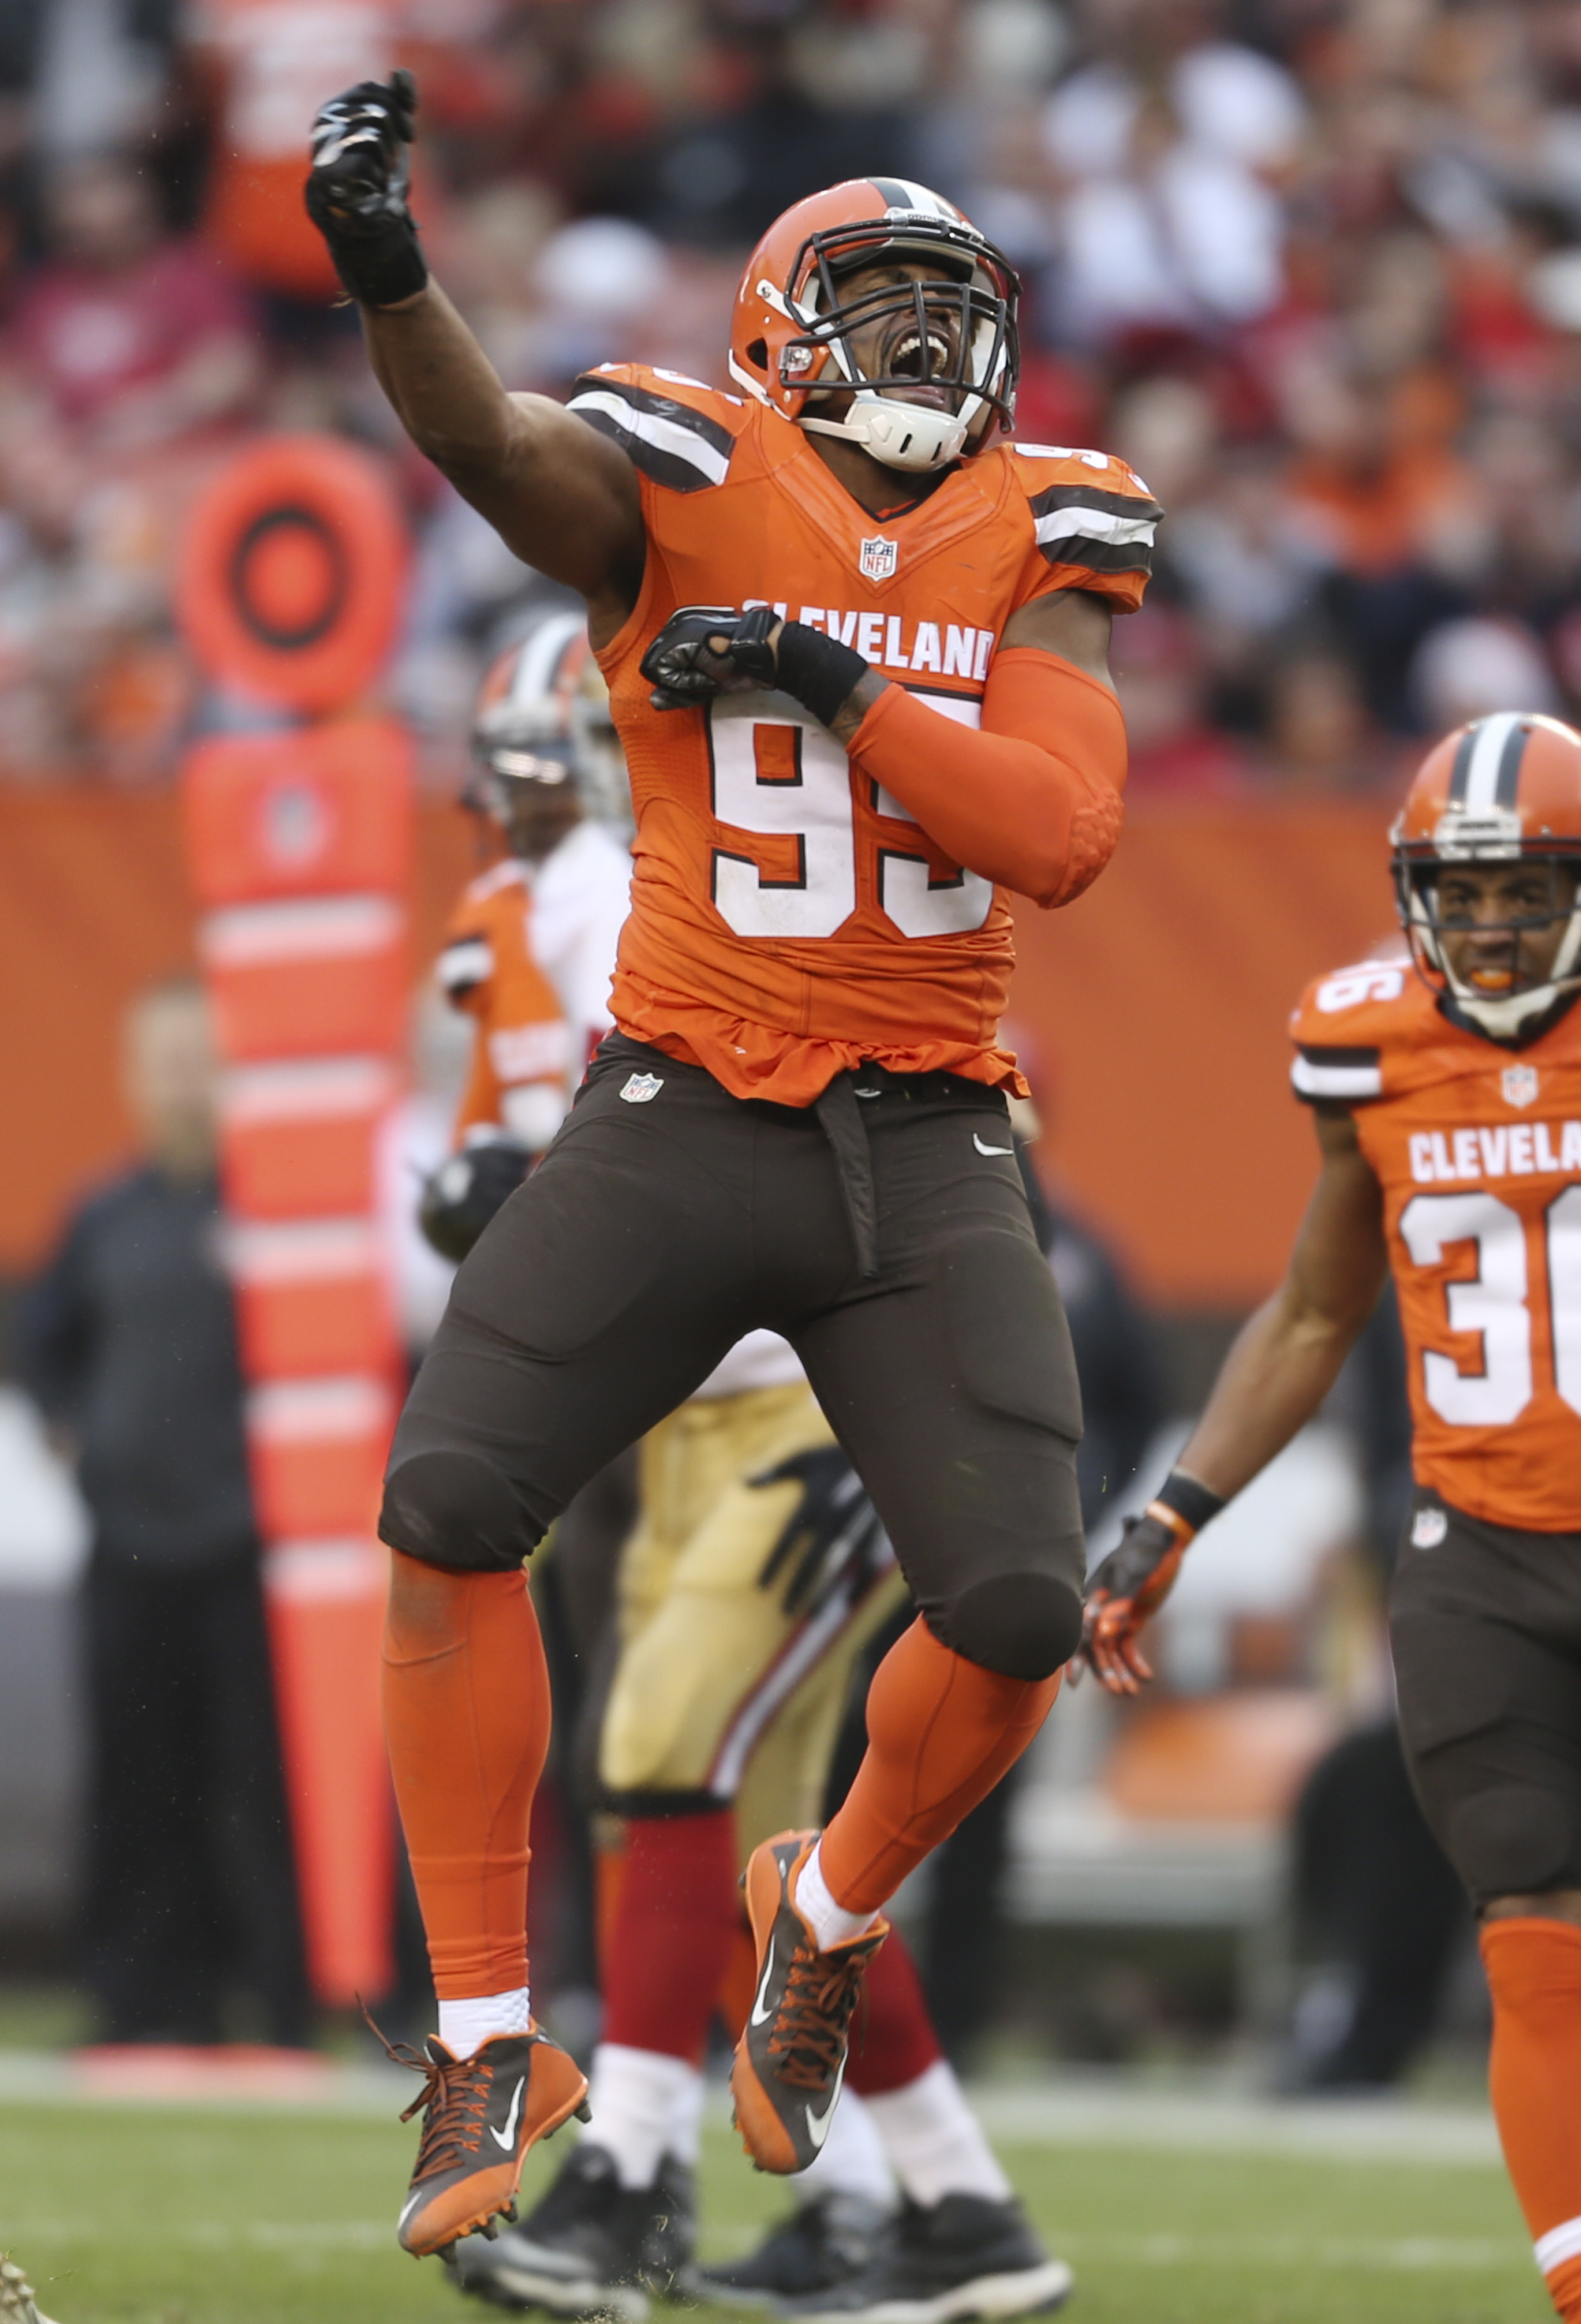 Cleveland Browns defensive end Armonty Bryant (95) celebrates after sacking San Francisco 49ers quarterback Blaine Gabbert (2) during the second half of an NFL football game, Sunday, Dec. 13, 2015, in Cleveland. (AP Photo/Ron Schwane)